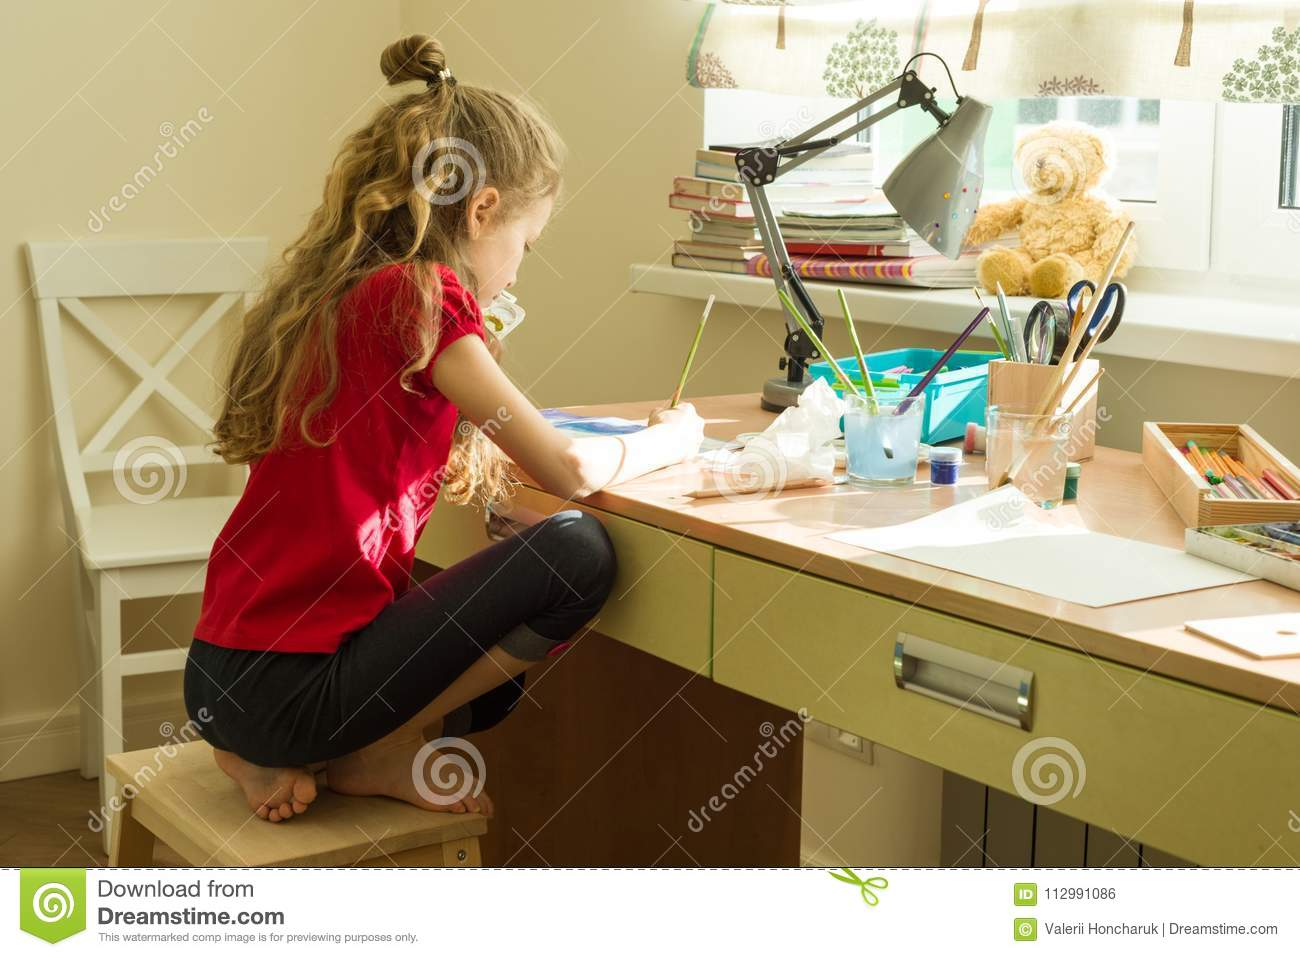 Girl child draws watercolor at the table at home. Child creativity, recreation, development.